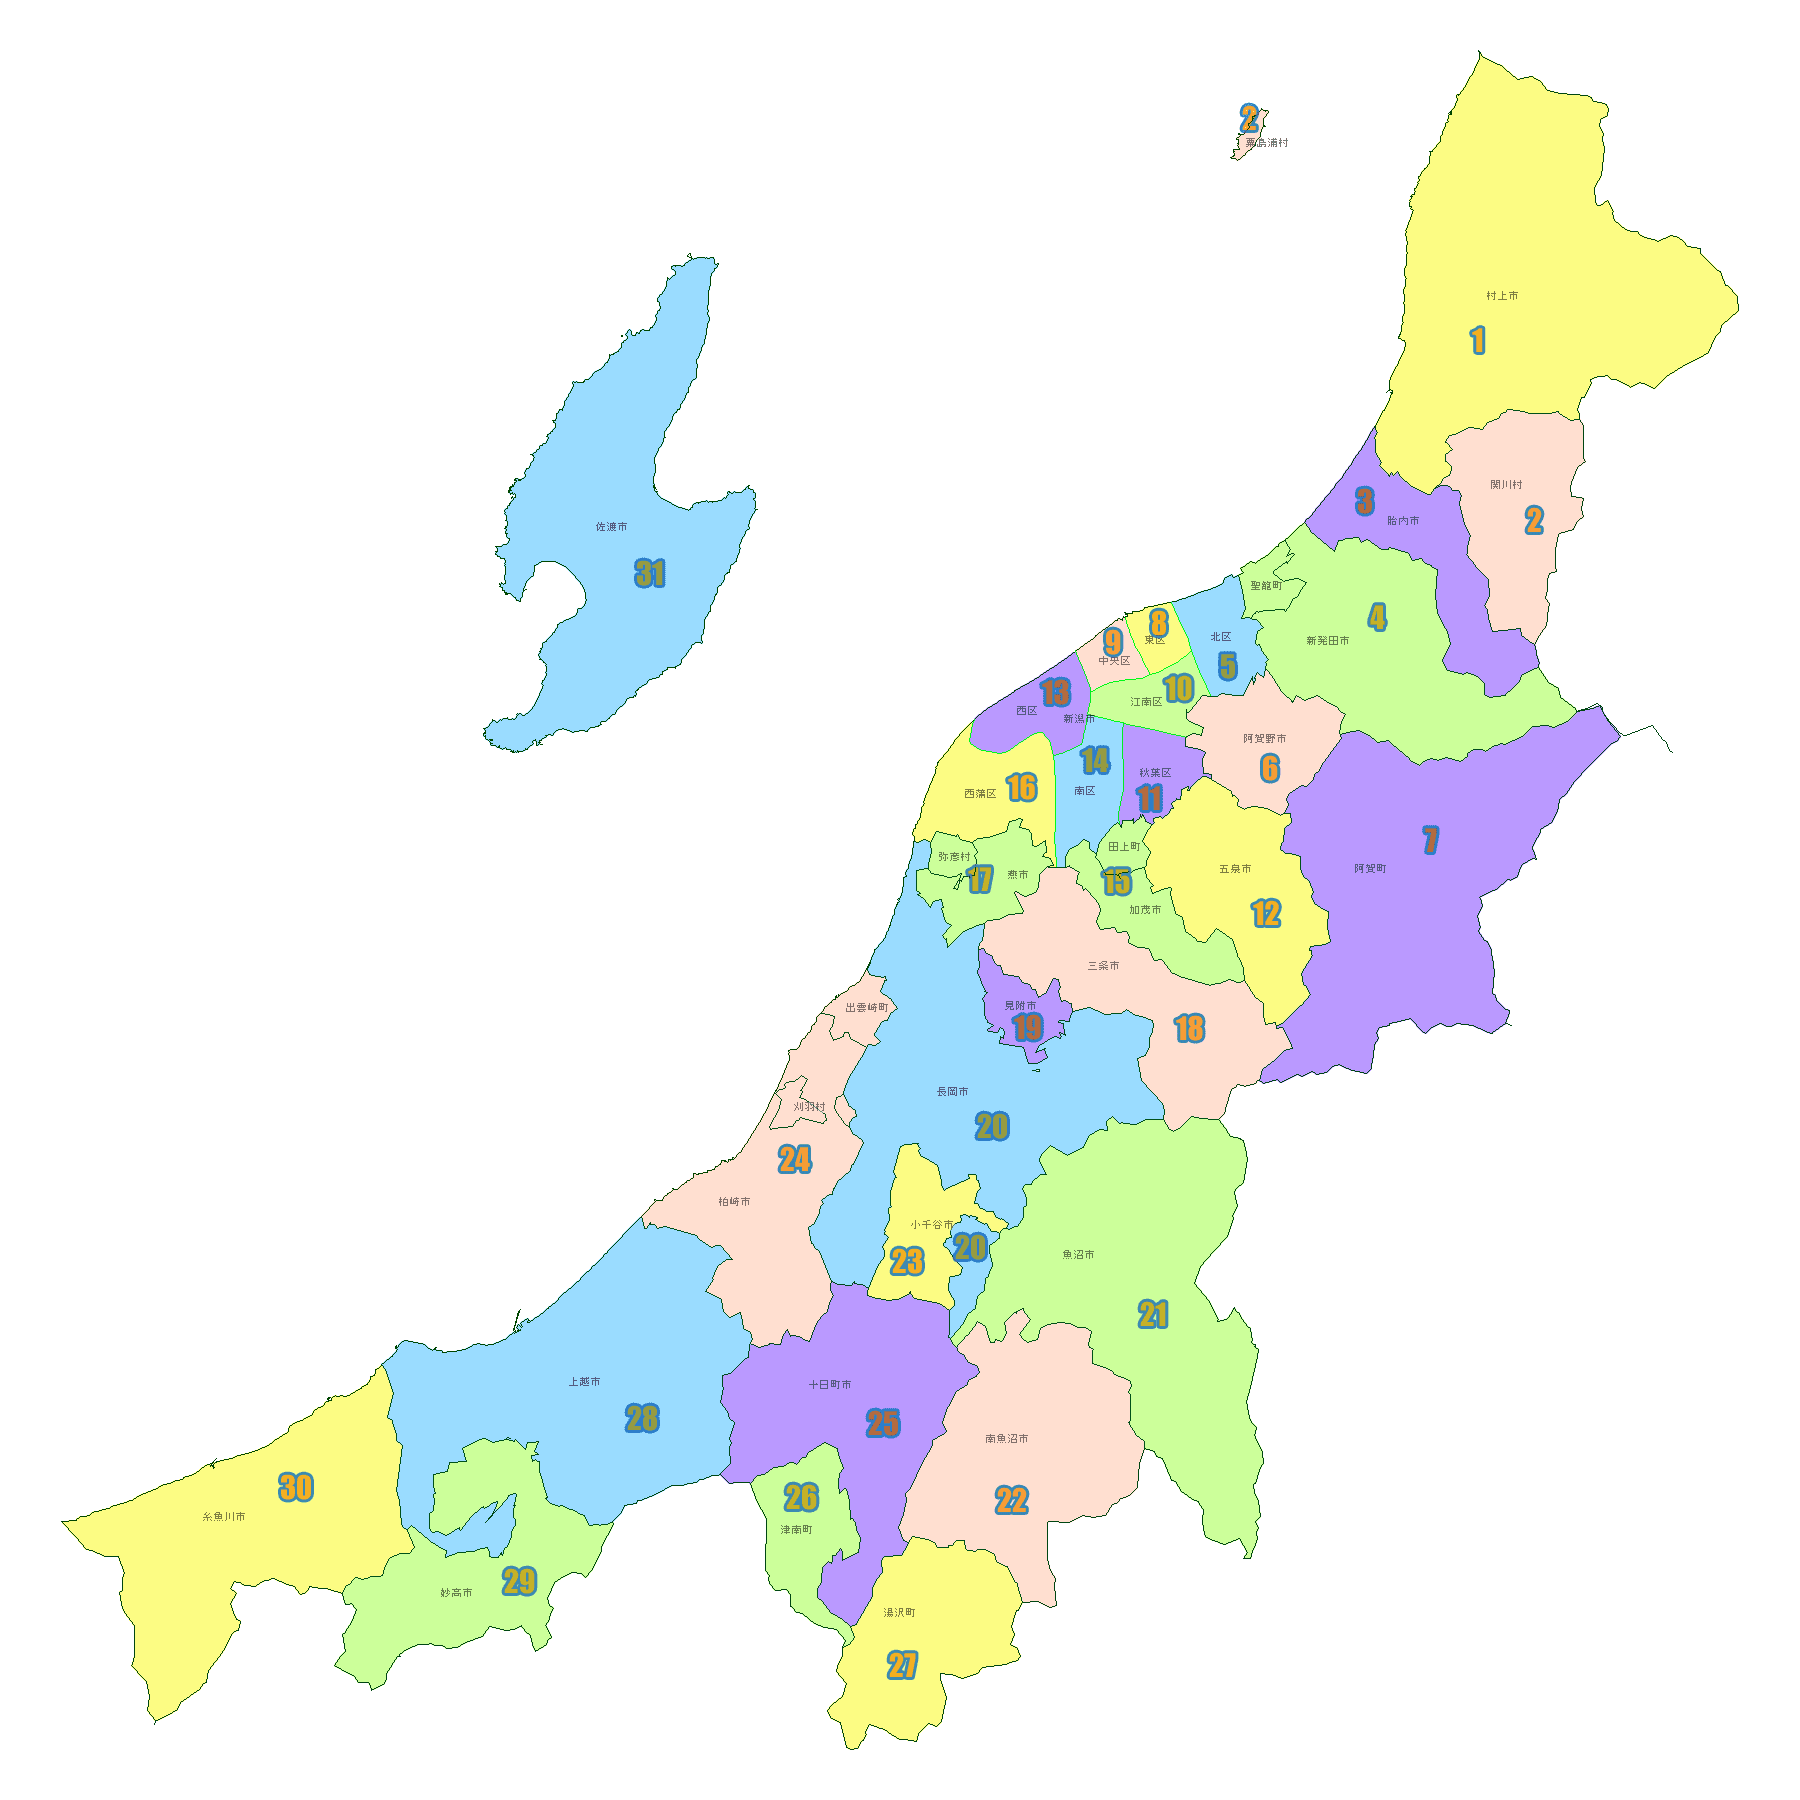 Images of 新潟県 - JapaneseClass.jp